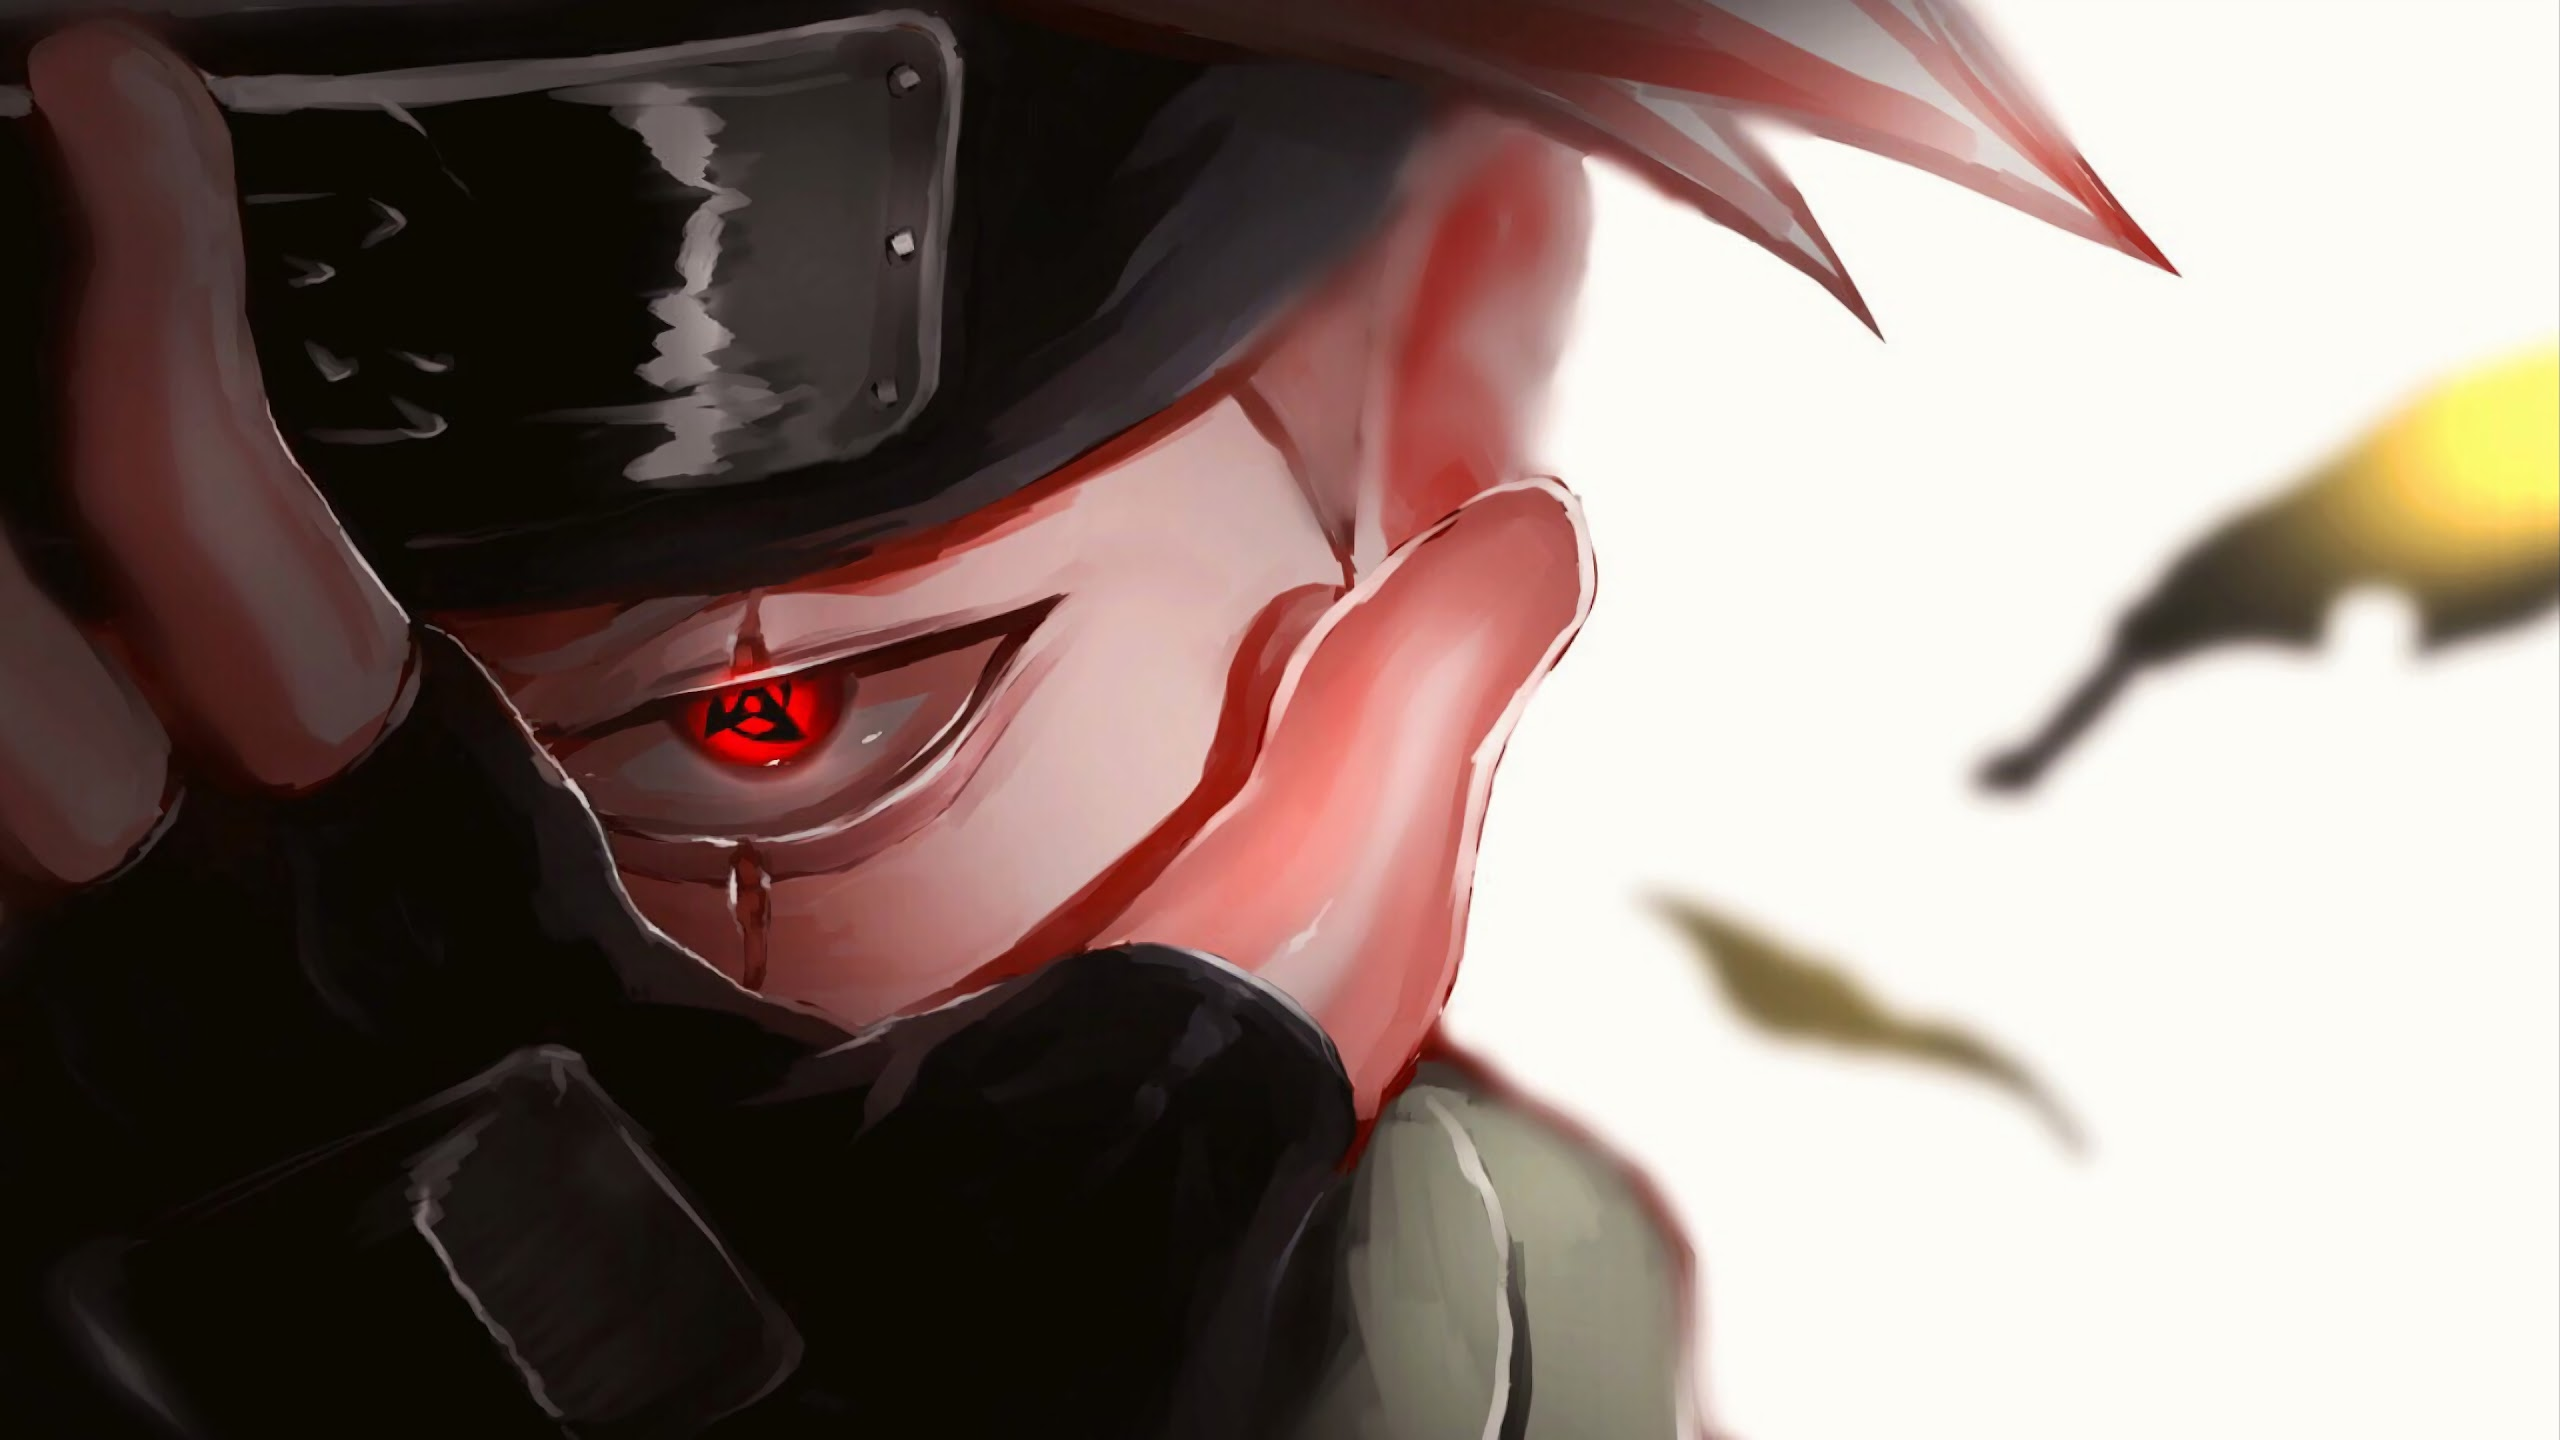 Kakashi Mangekyo Sharingan 4k Wallpaper 31